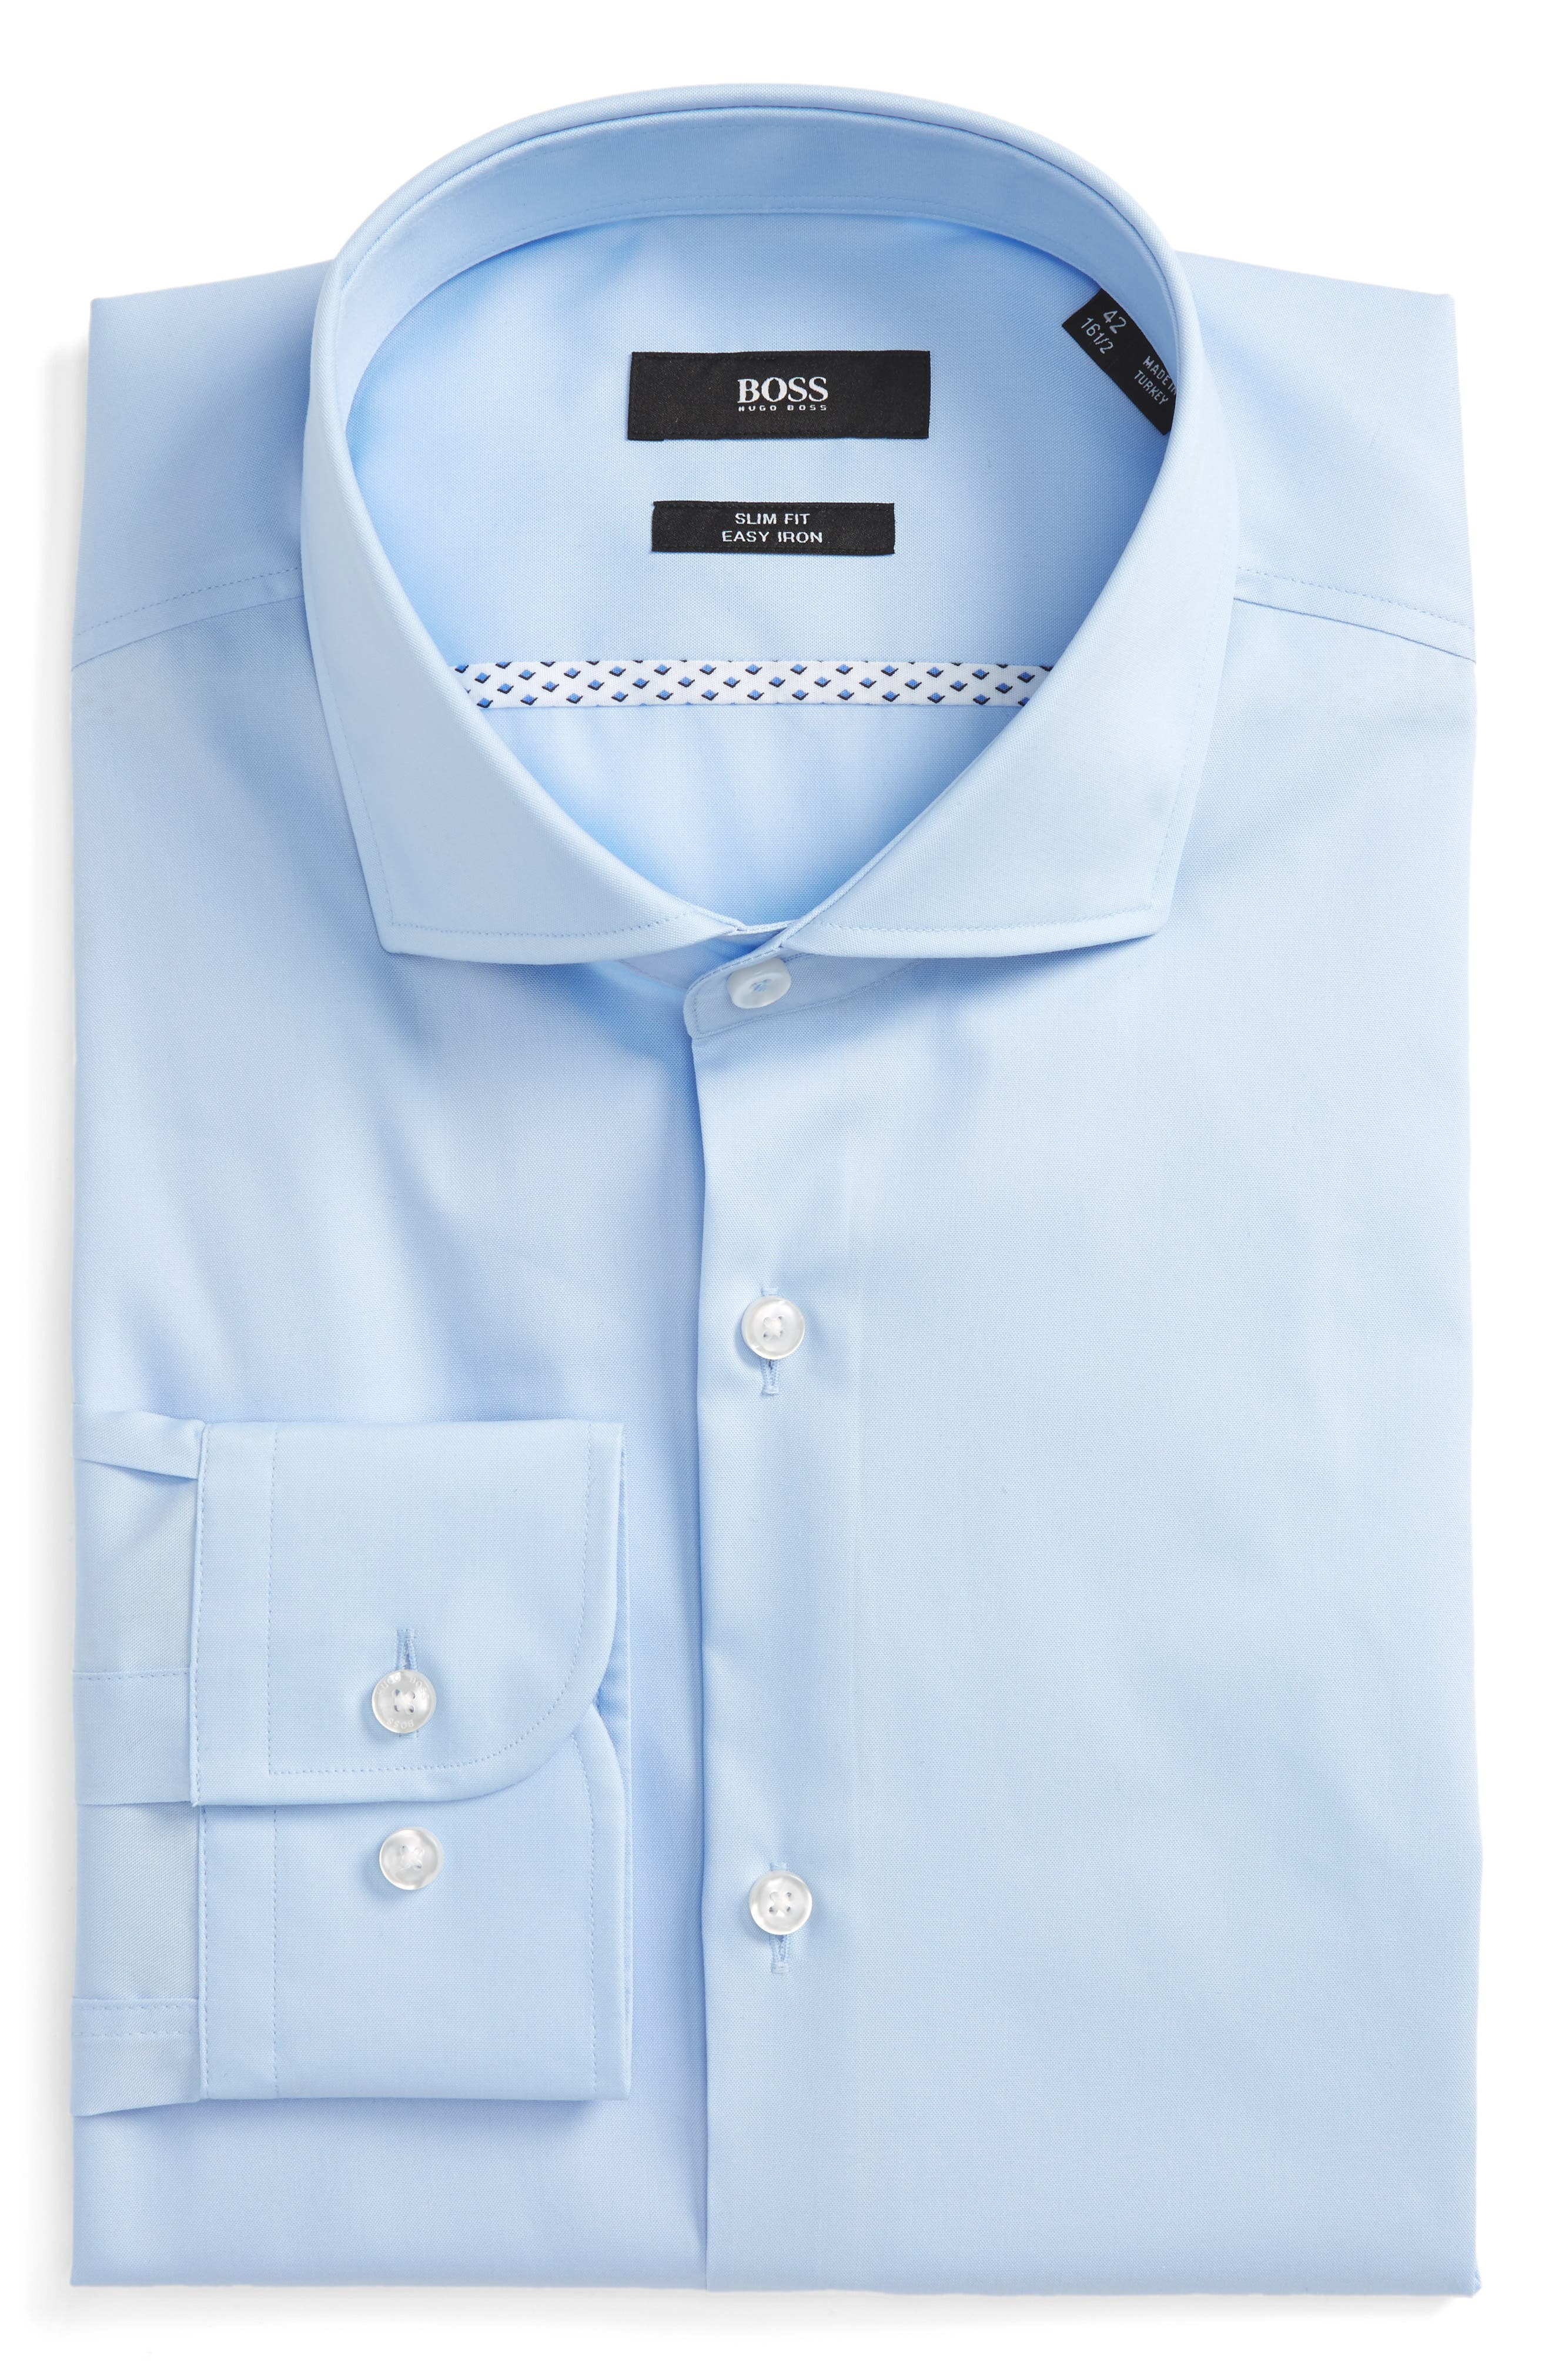 Main Image - BOSS Slim Fit Easy Iron Solid Dress Shirt